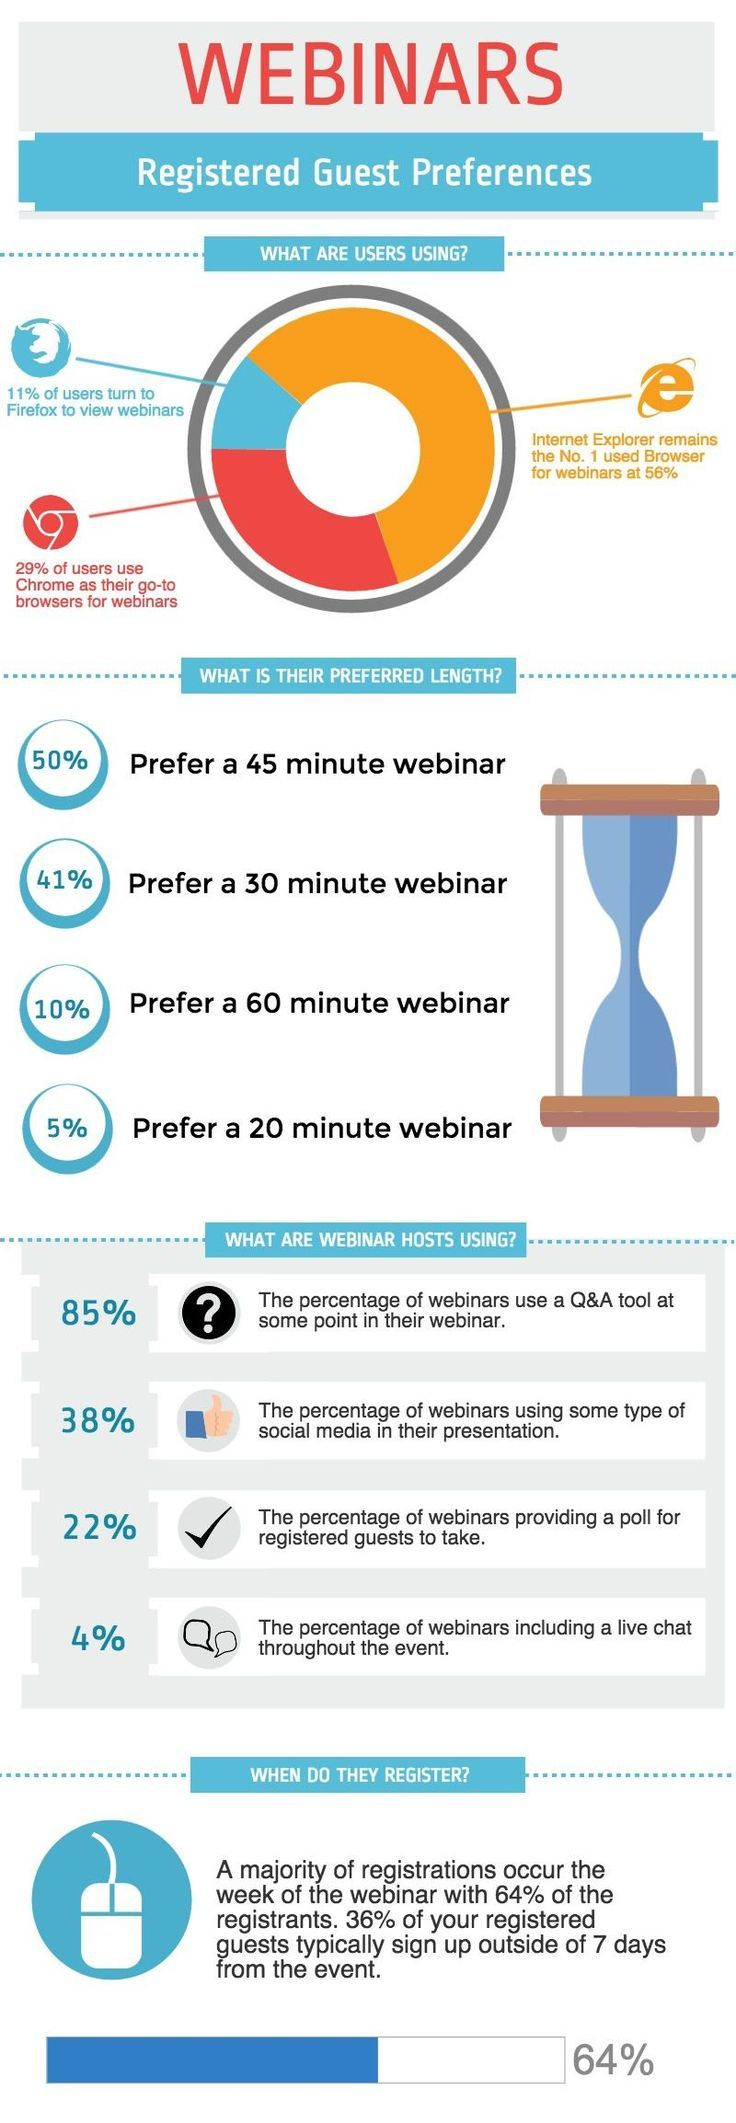 Here #are #a #few #of #the #reasons #why #webinars #can #help #your #business, #whether #it #be #B2C #or #B2B. ##infographic,  #B2B #B2C #business #infographic #infographicideas #Reasons #webinars